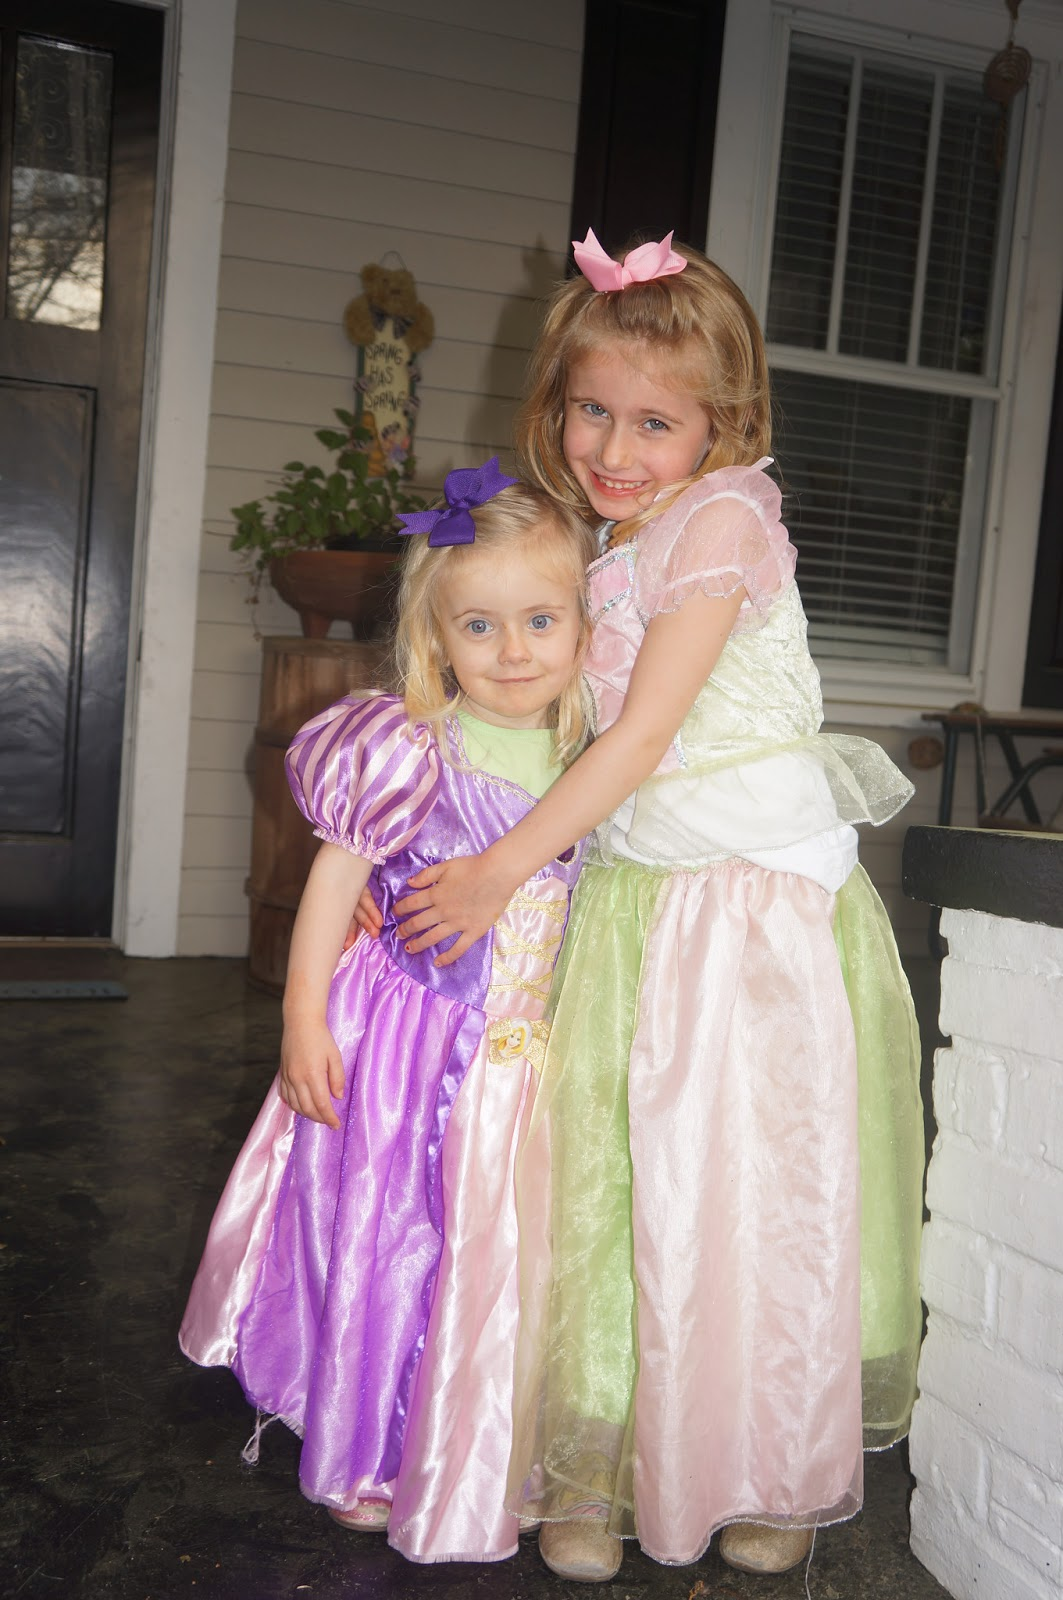 Their Princess Dresses